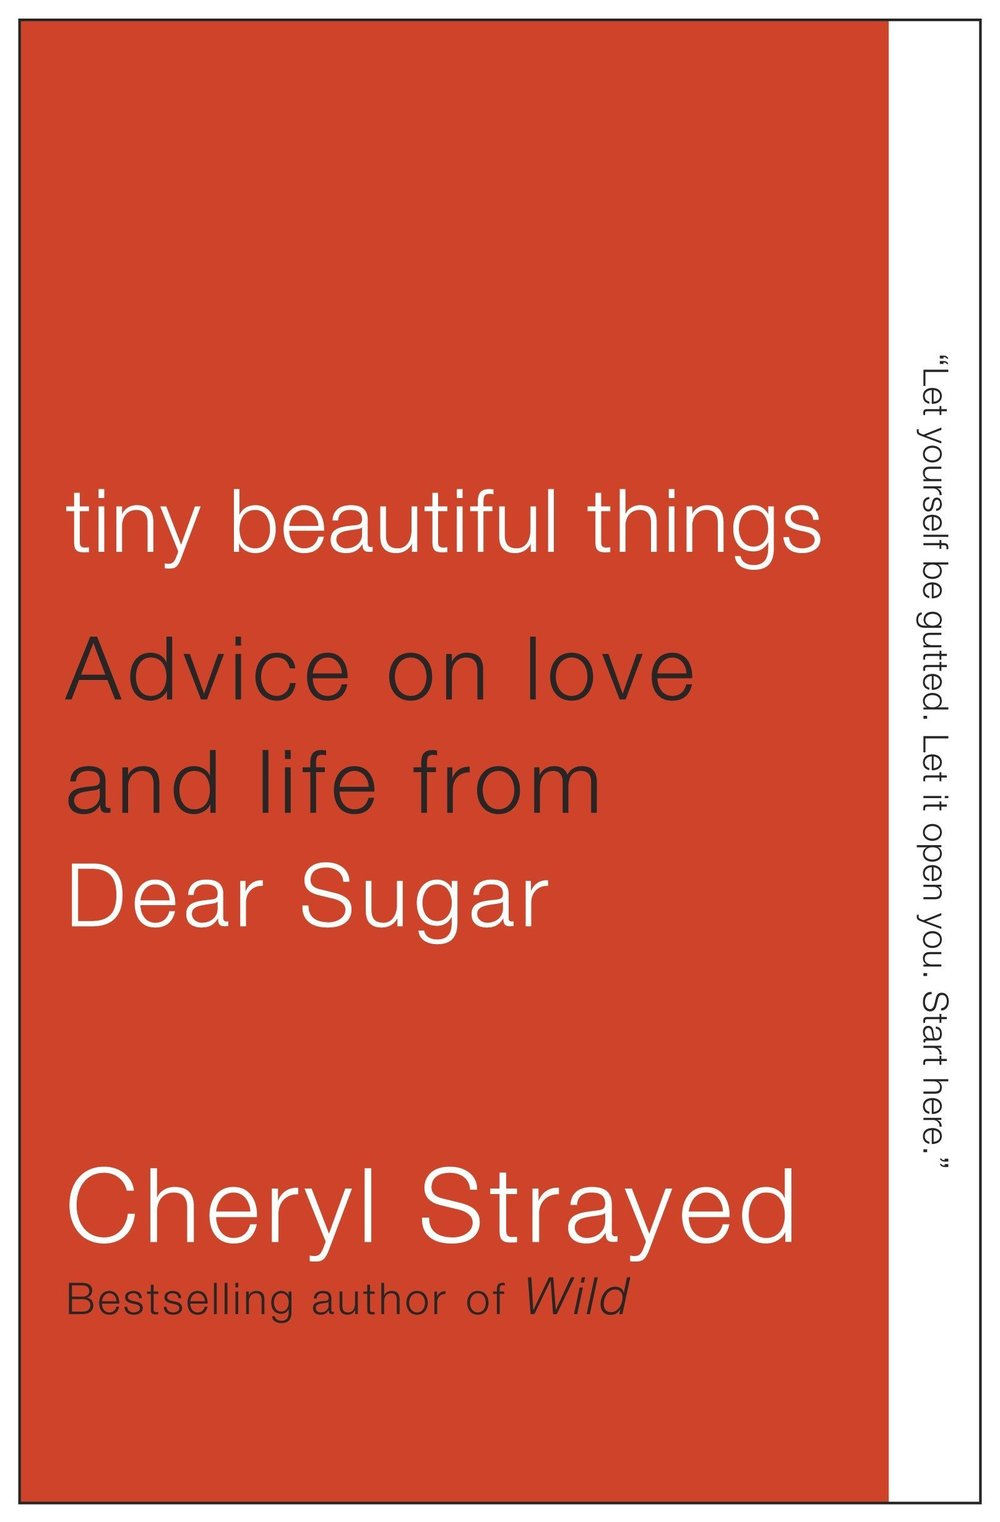 tiny beautiful things by cheryl strayed.jpg